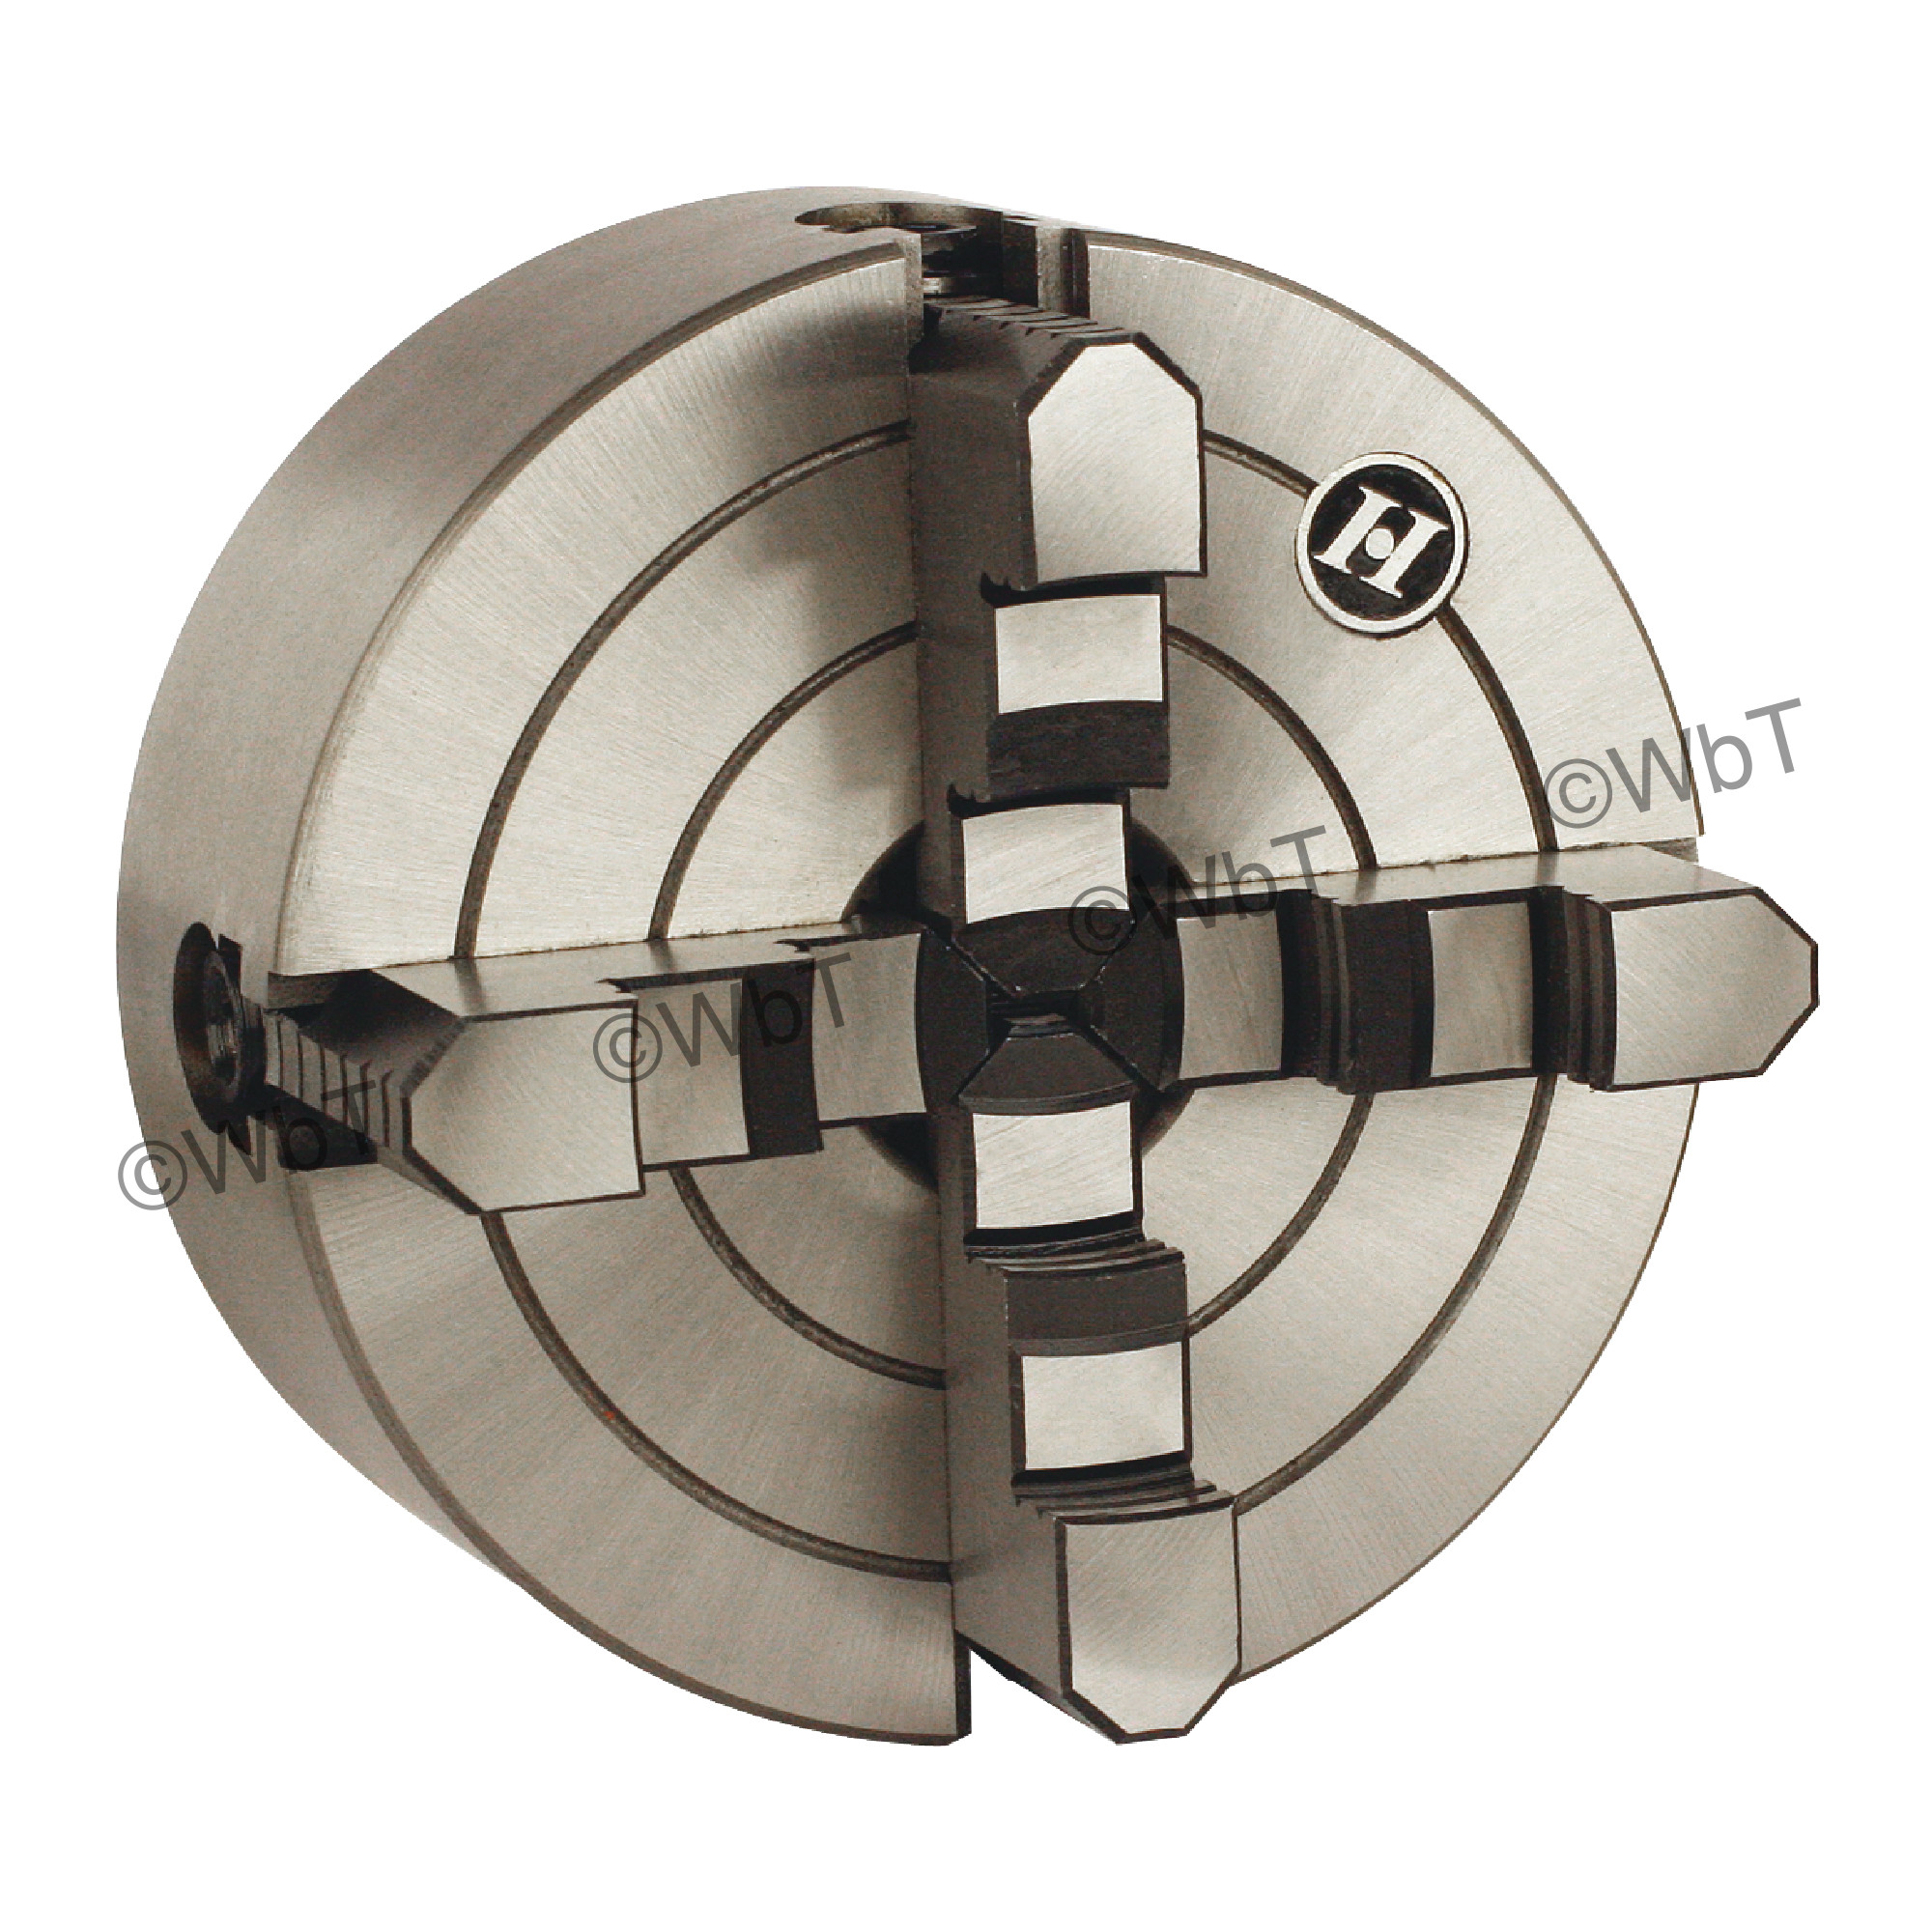 4 Jaw Chuck for OT25531 Combination Lathe